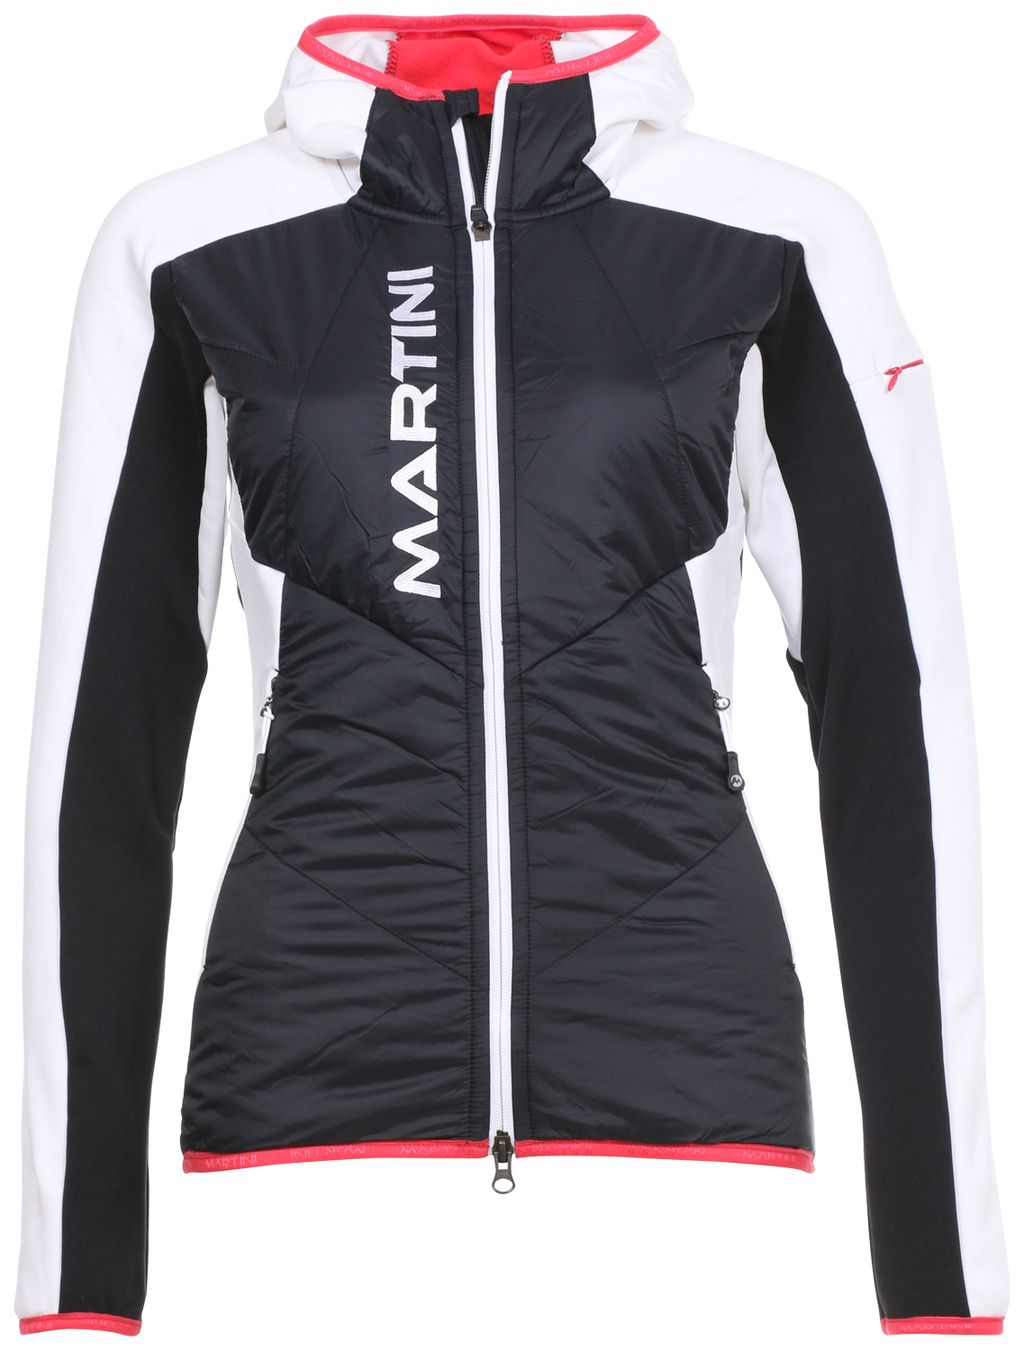 Jacke ALPINA von MARTINI shop at | Jacken